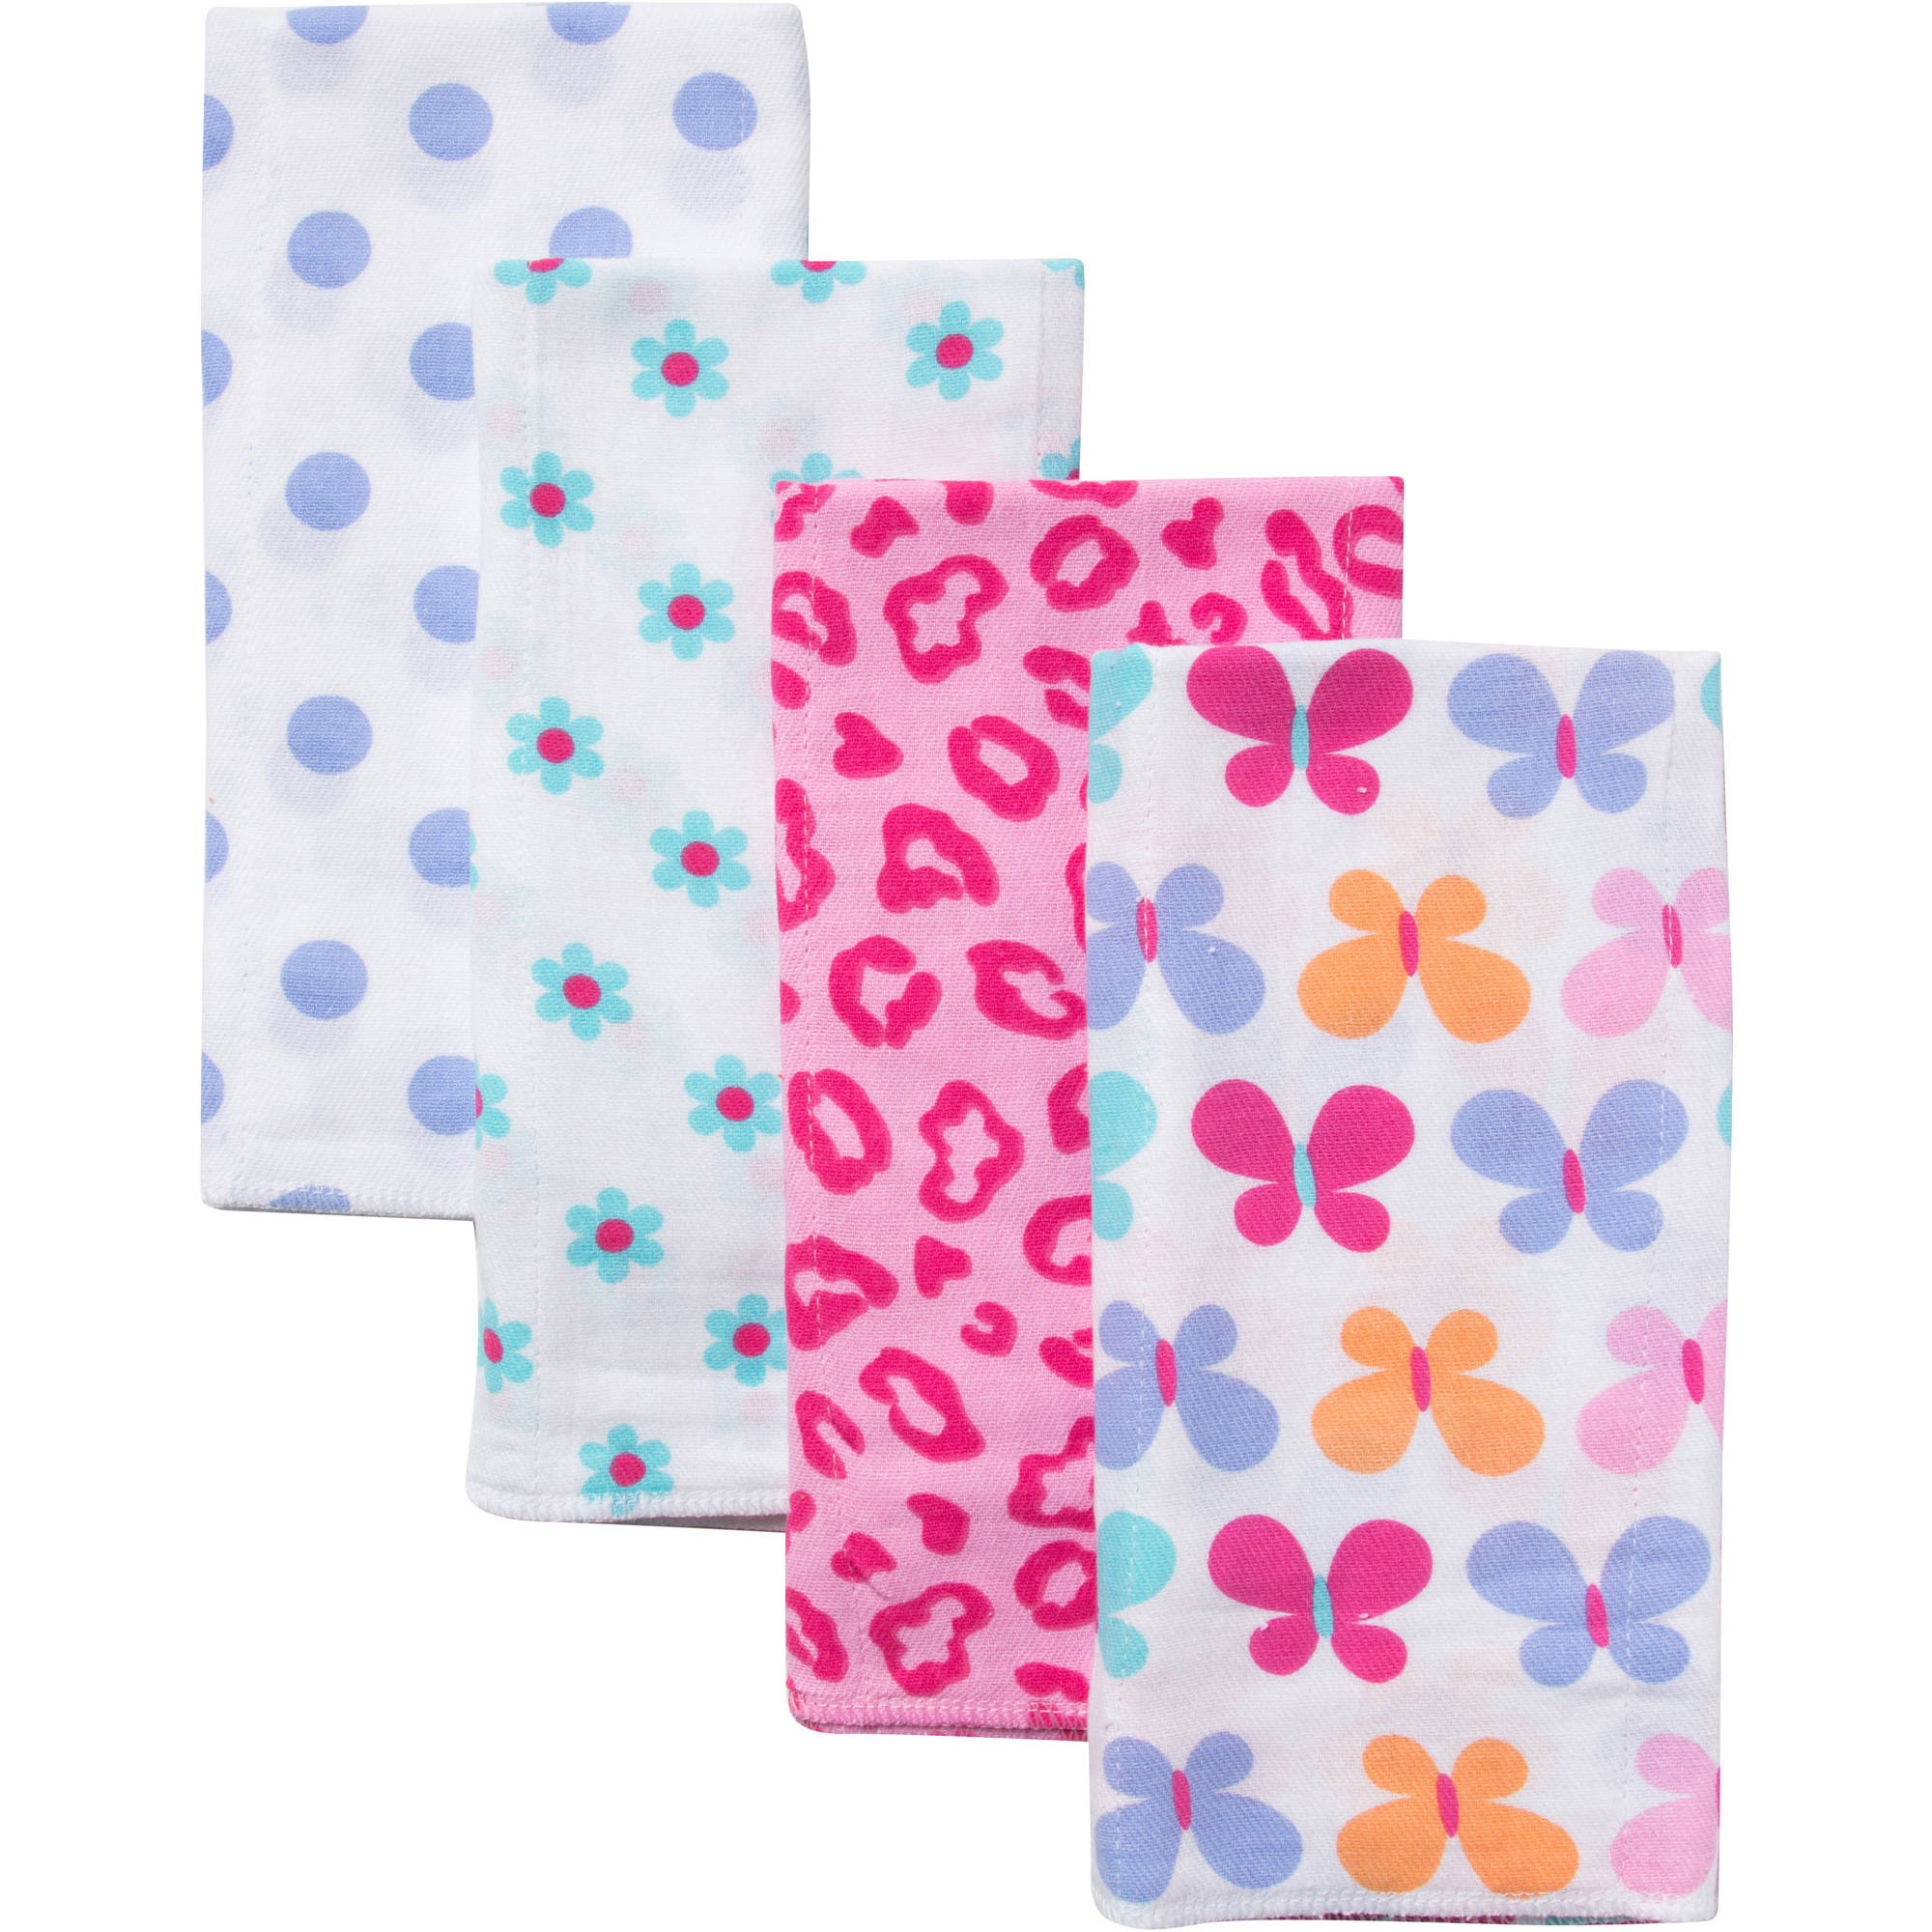 Gerber Prefold Diaper Burp Cloths, Girl Floral Print, 4 count